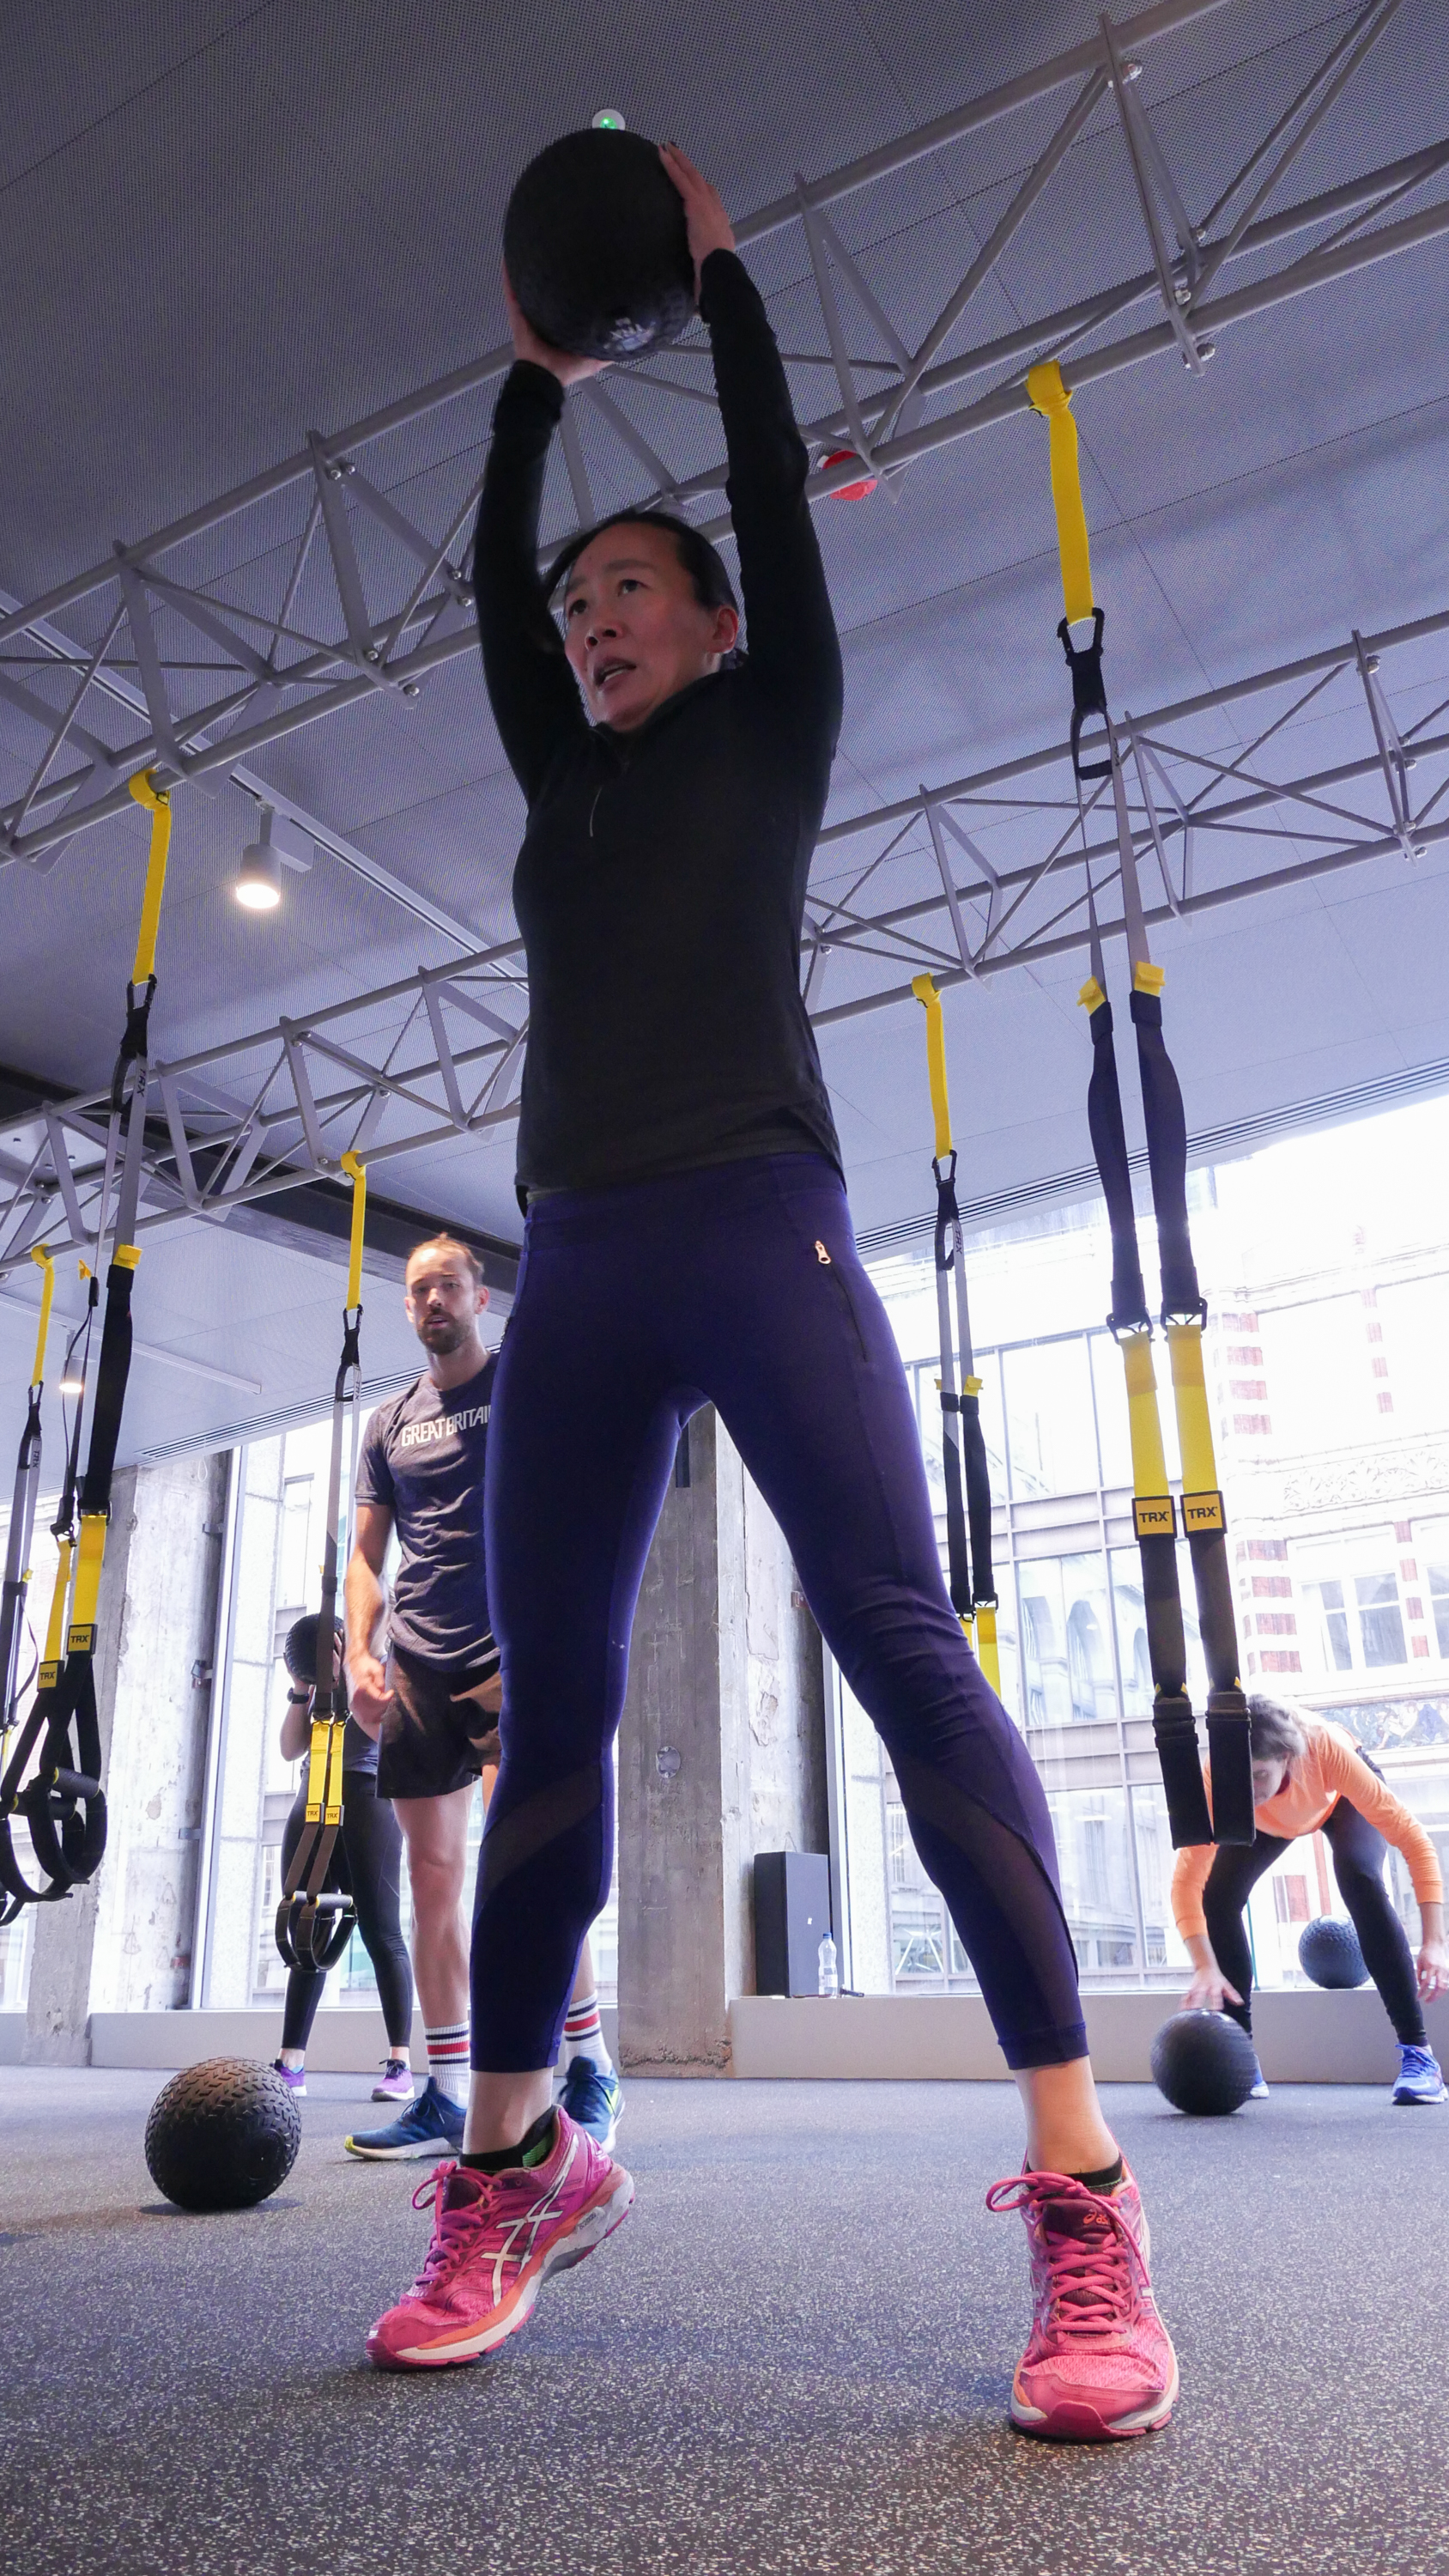 TRX Power - This is a high energy and fun class incorporating different modalities in addition to the TRX suspension trainer such as slam balls, kettle bells, battle ropes and the Rip Trainer.You will be challenged by the high intensity and high calorie burning cardio workout structured around repeated sets of the various modalities.Be ready to sweat!